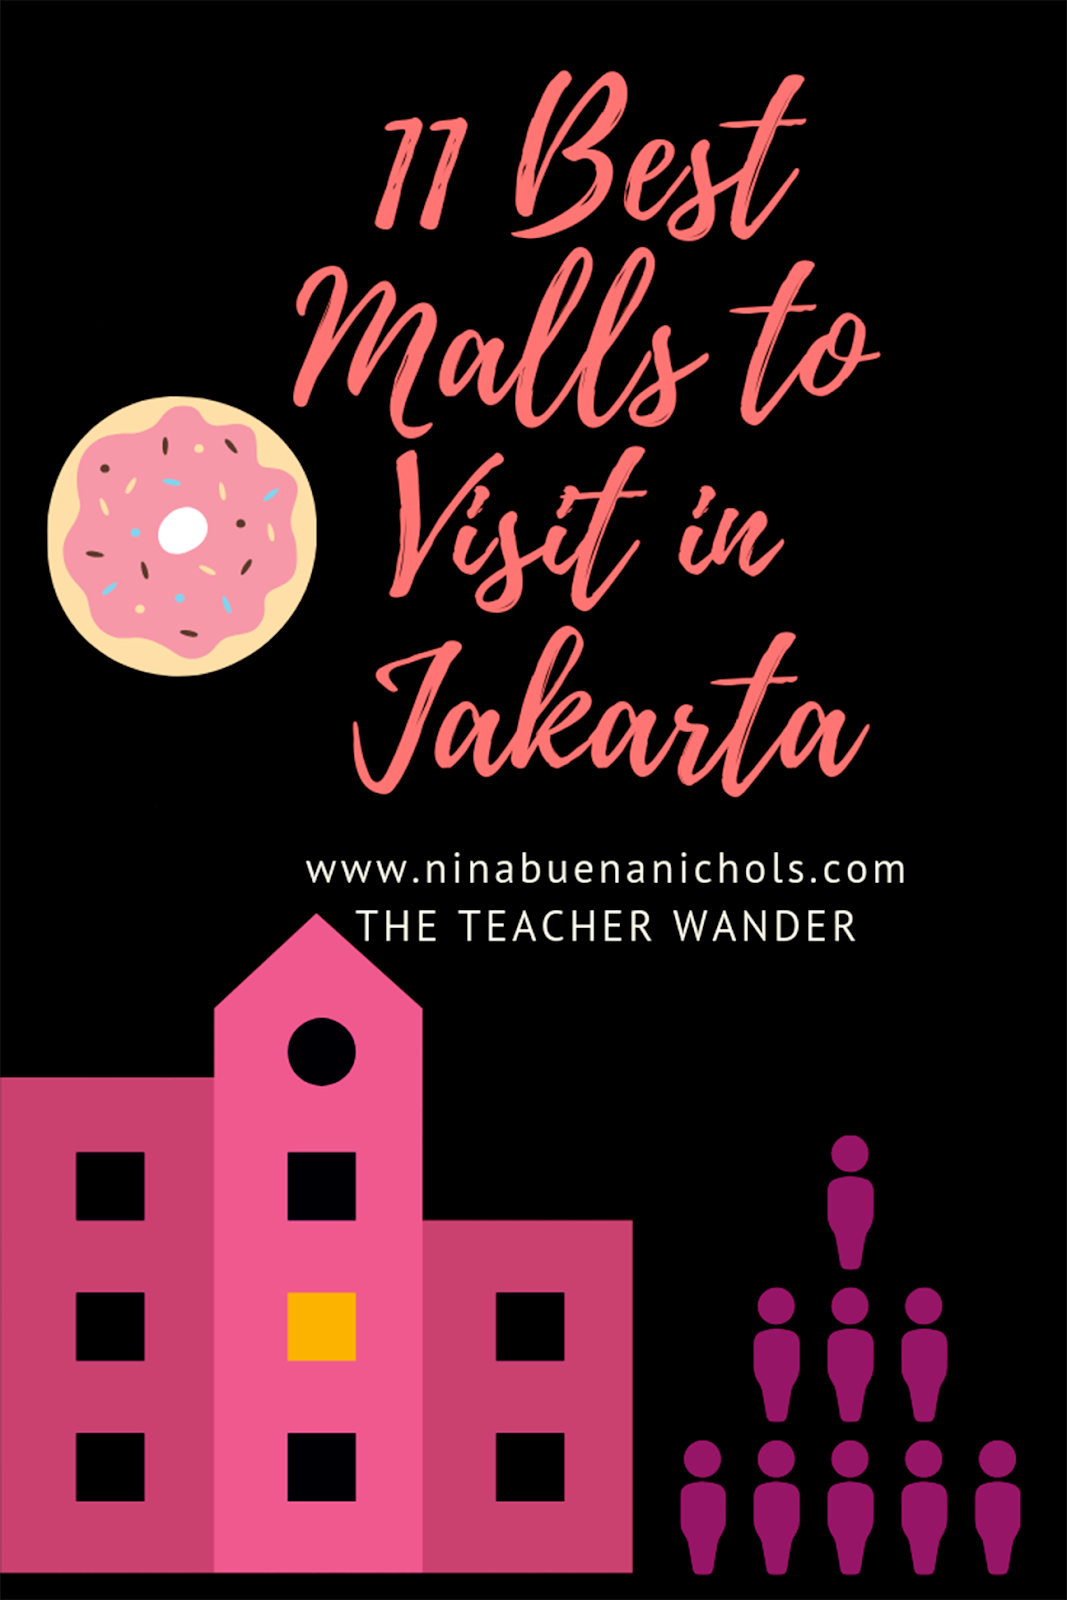 As an expat for almost four years in Jakarta, Indonesia, my best form of relaxation was shopping. There's no better place to do this than in Jakarta since the city is a home to more than 100 malls.